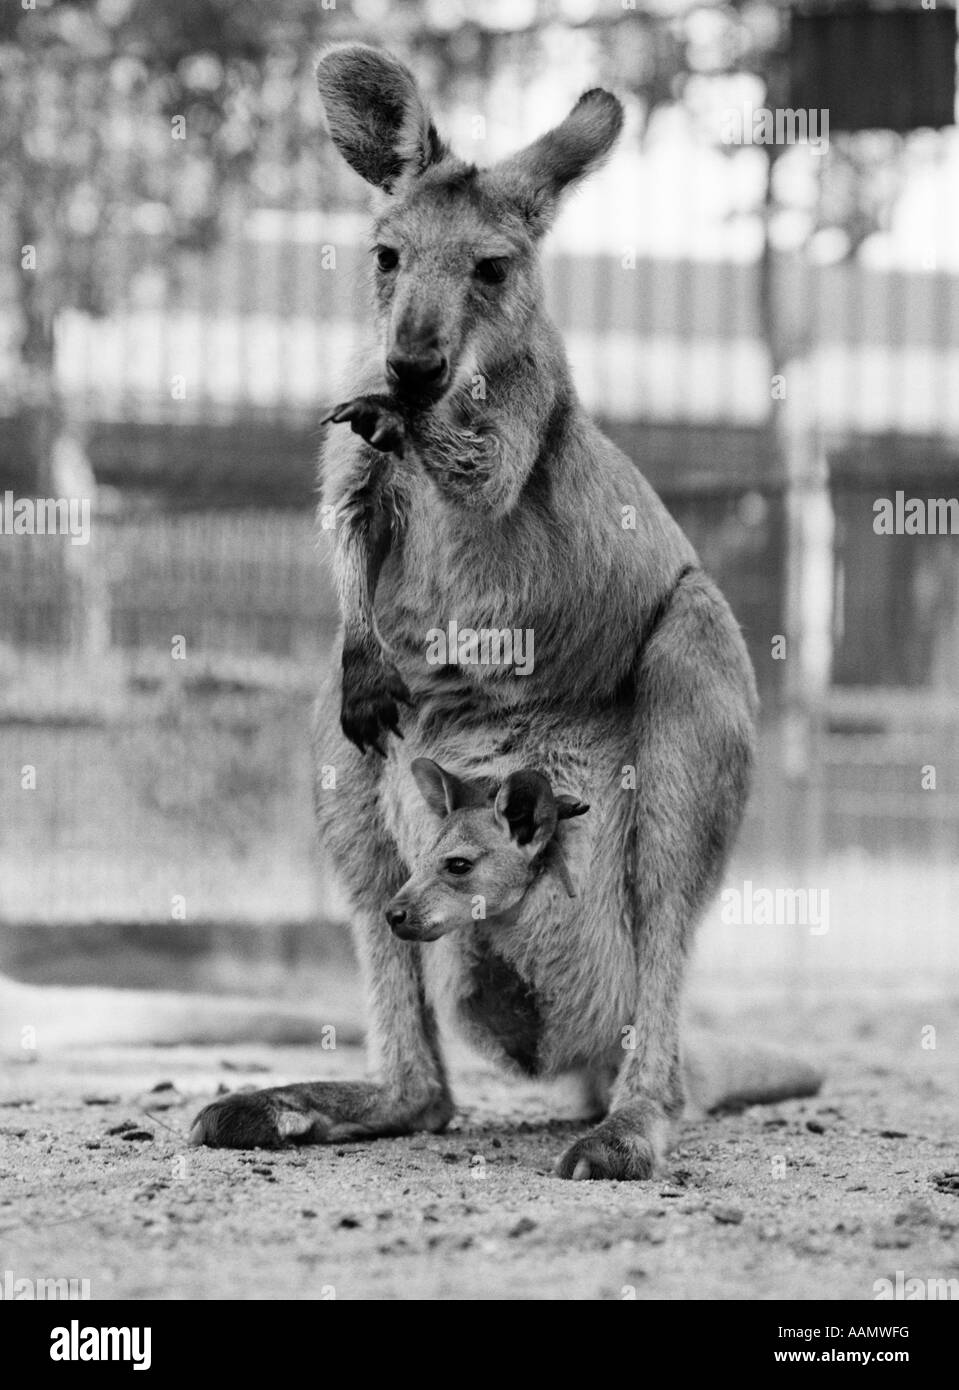 1940s KANGAROO STANDING WITH JOEY IN POUCH - Stock Image